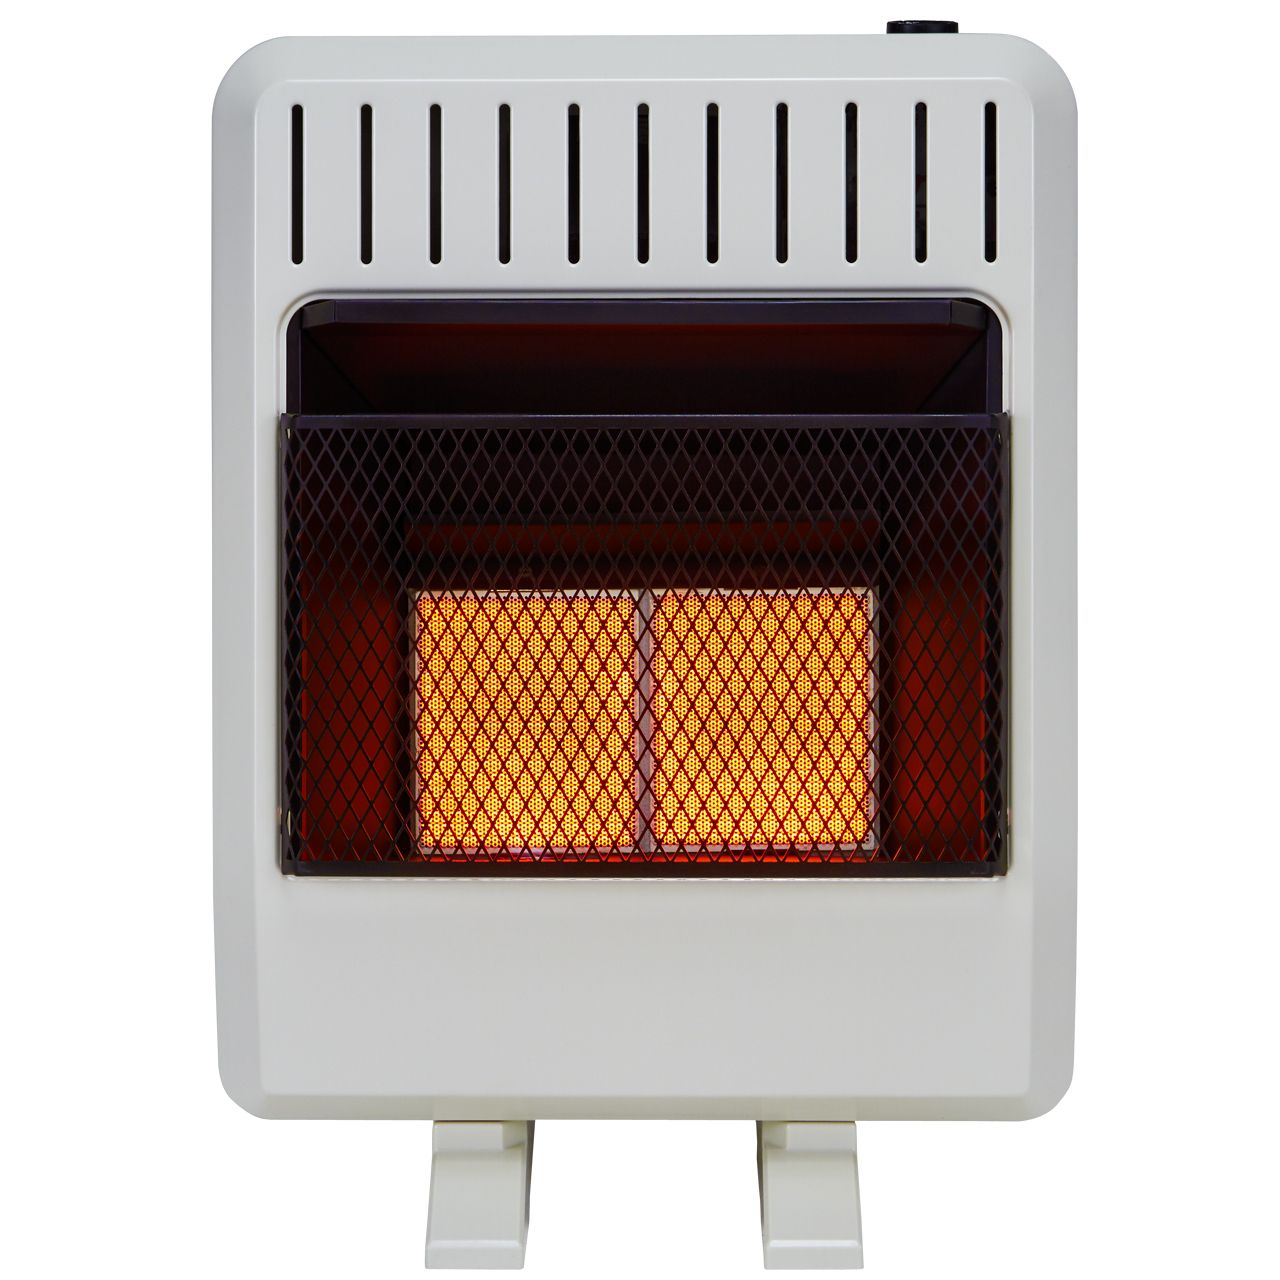 Online For Ventless Gas Heaters Fireplaces Infrared Log Sets Blue Flame At Whole Prices